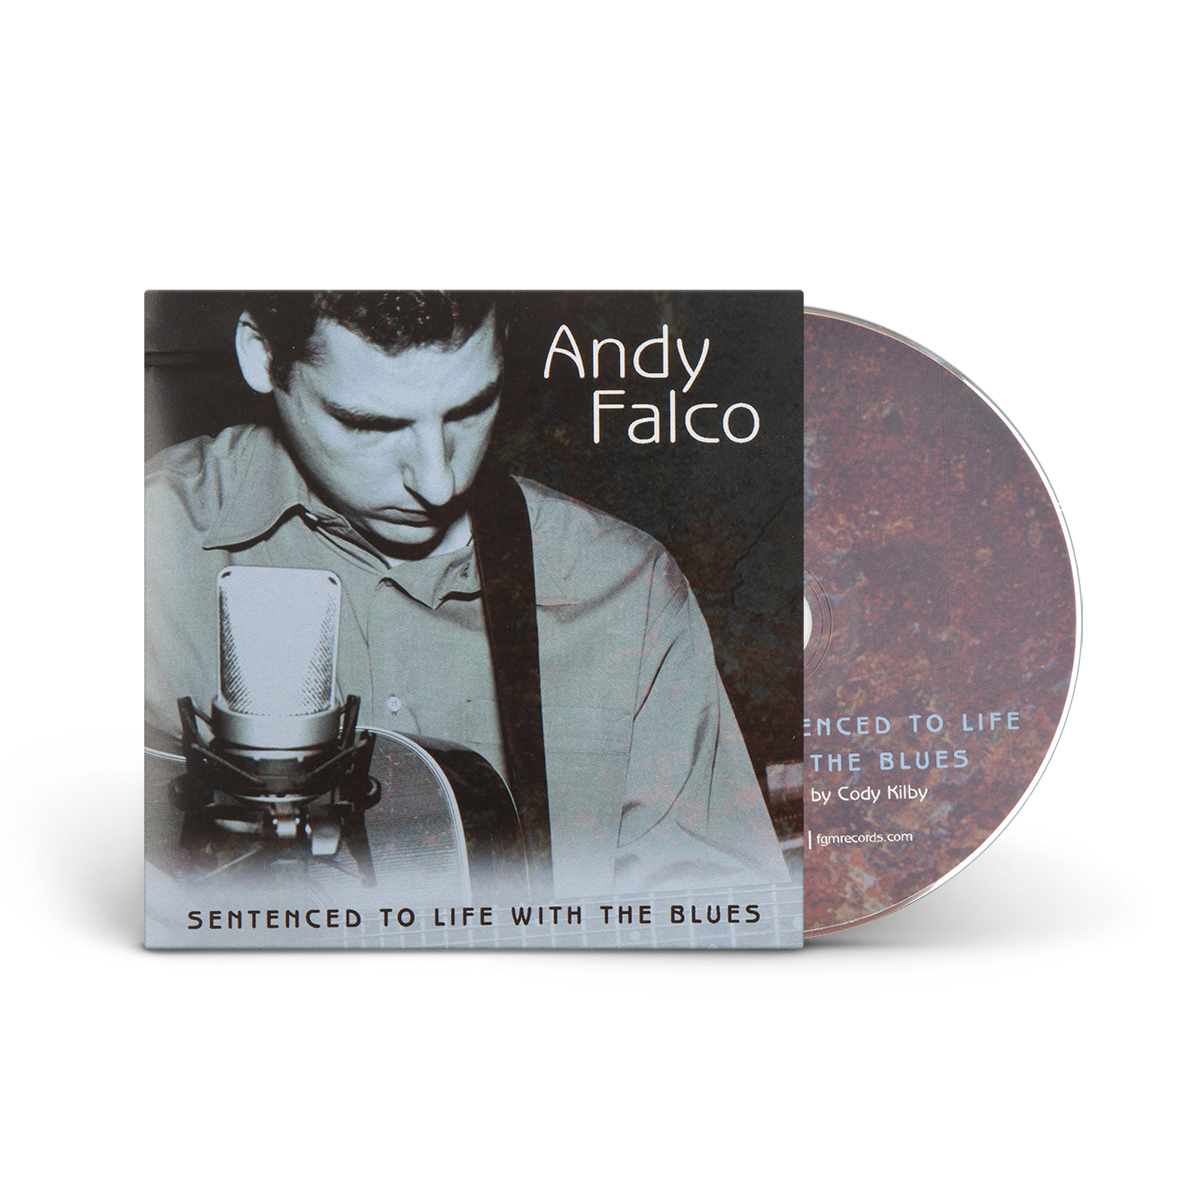 Andy Falco – Sentenced to Life With the Blues